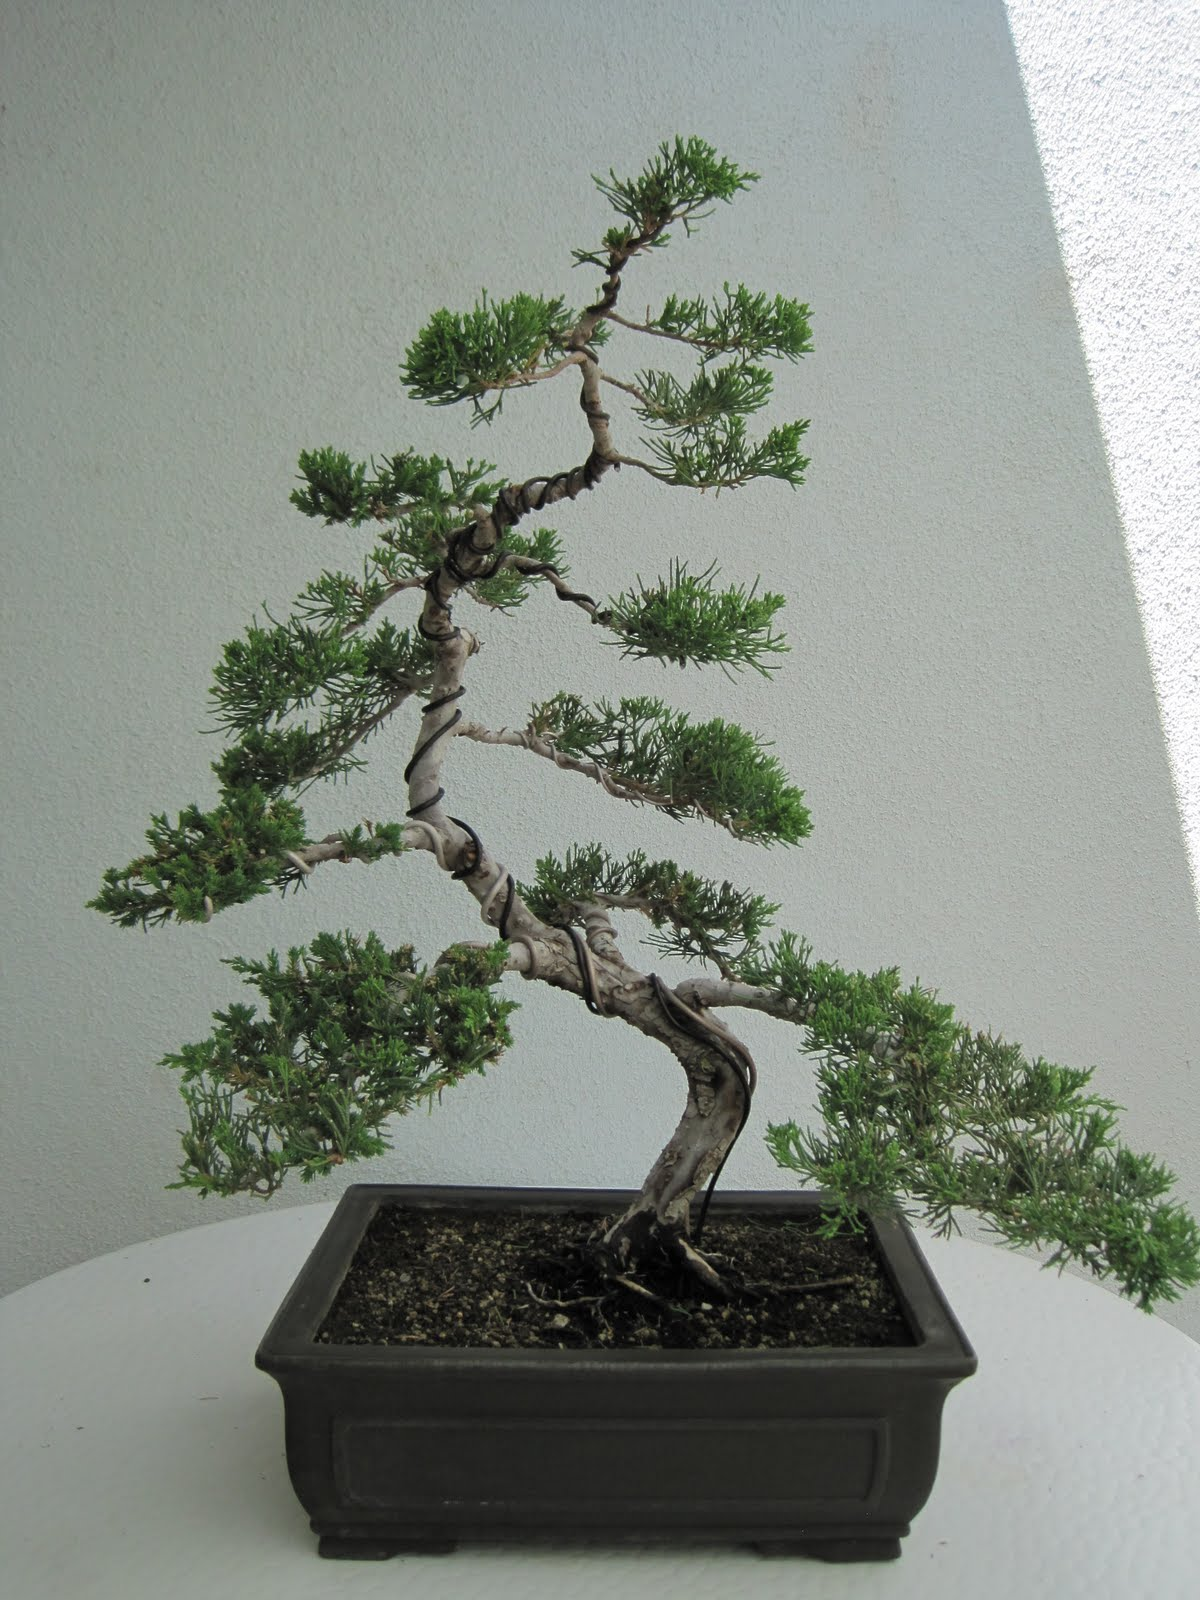 ShoChiku Bai Bonsai Club JUNE 2013 CURRENT BONSAI TREES FOR SALE